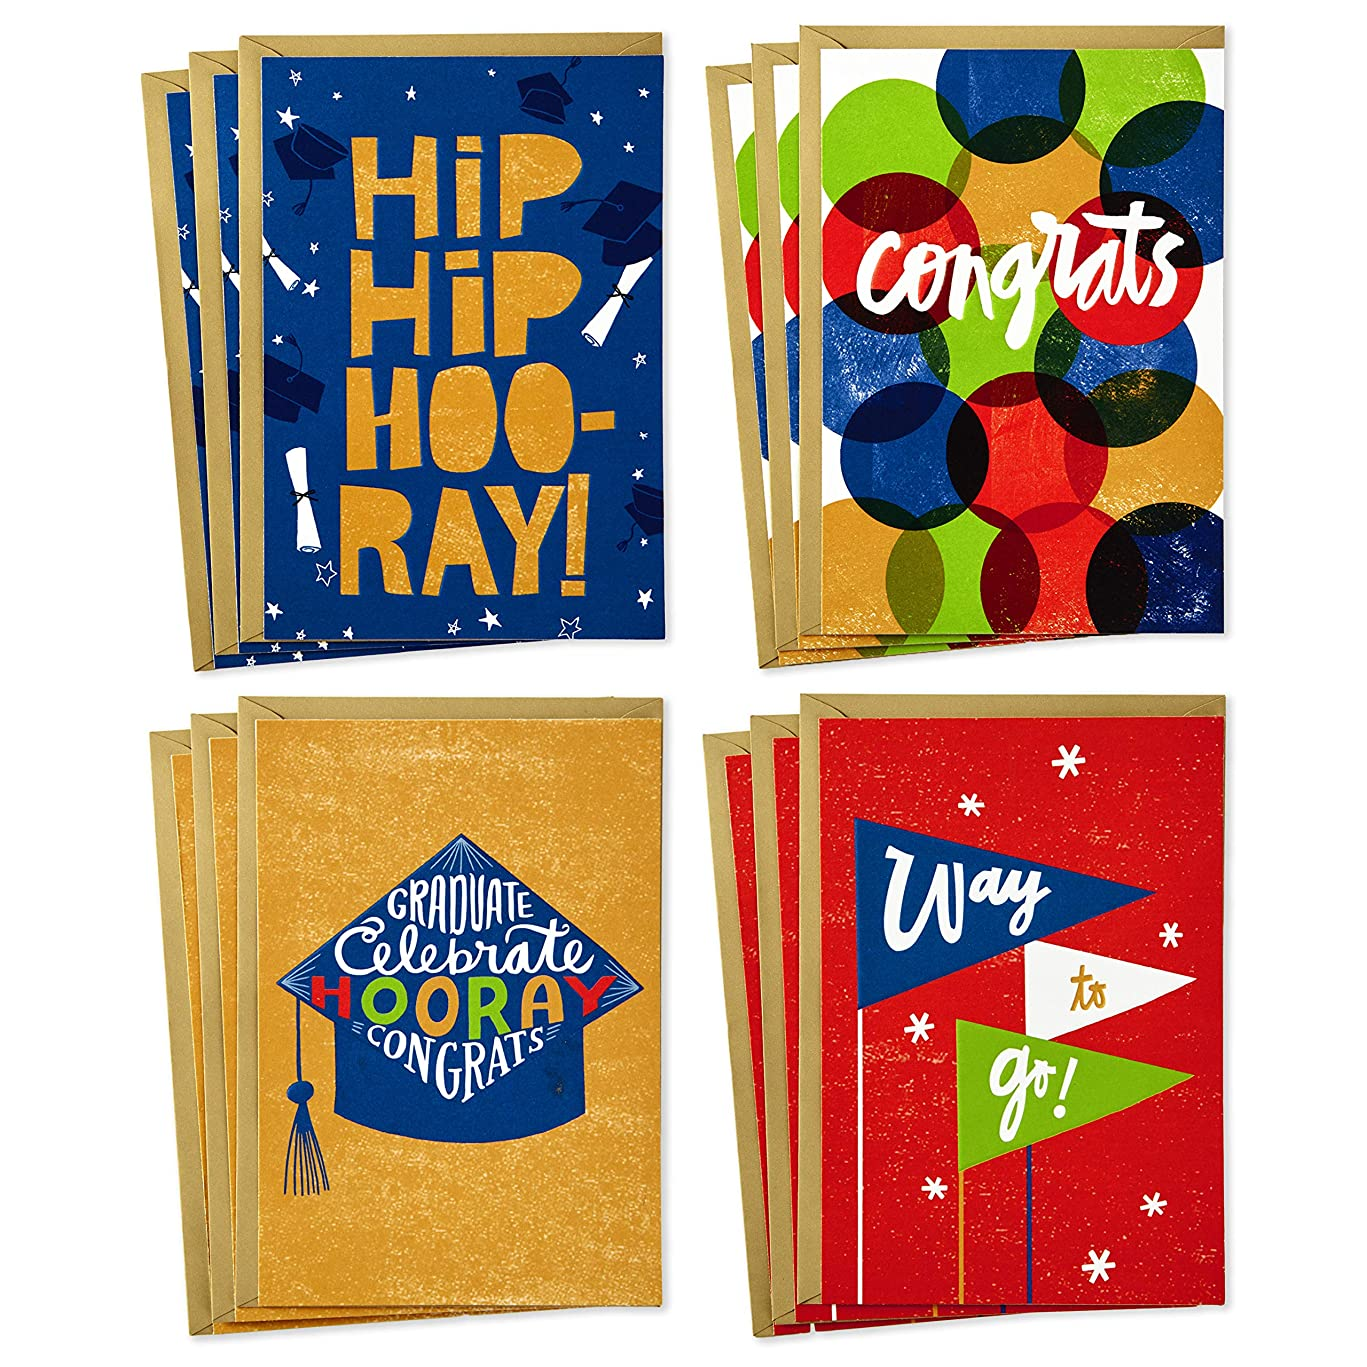 Hallmark Congratulations Cards Assortment (Boxed Set of 12 Cards with Envelopes)